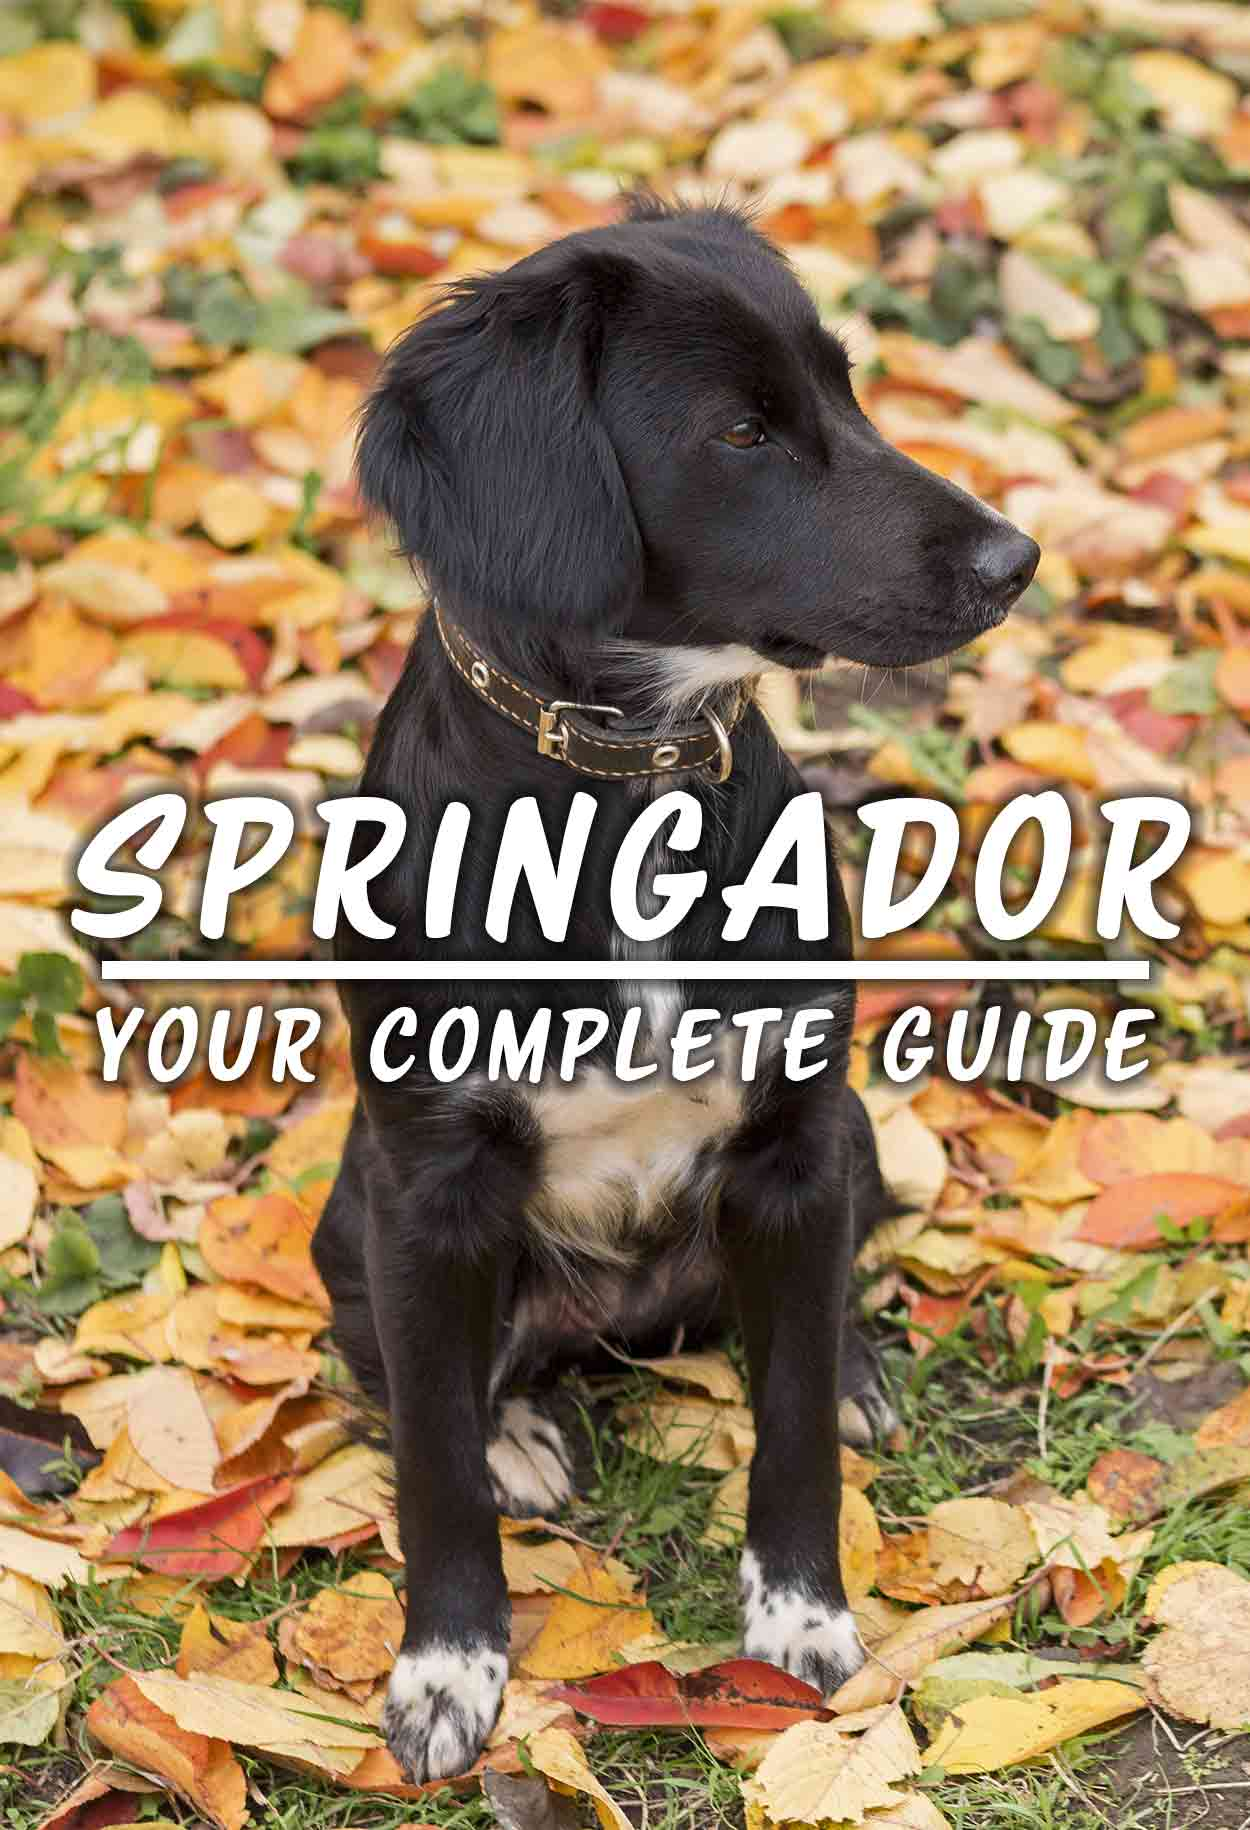 Springador, Your Complete Guide - Dog breed review